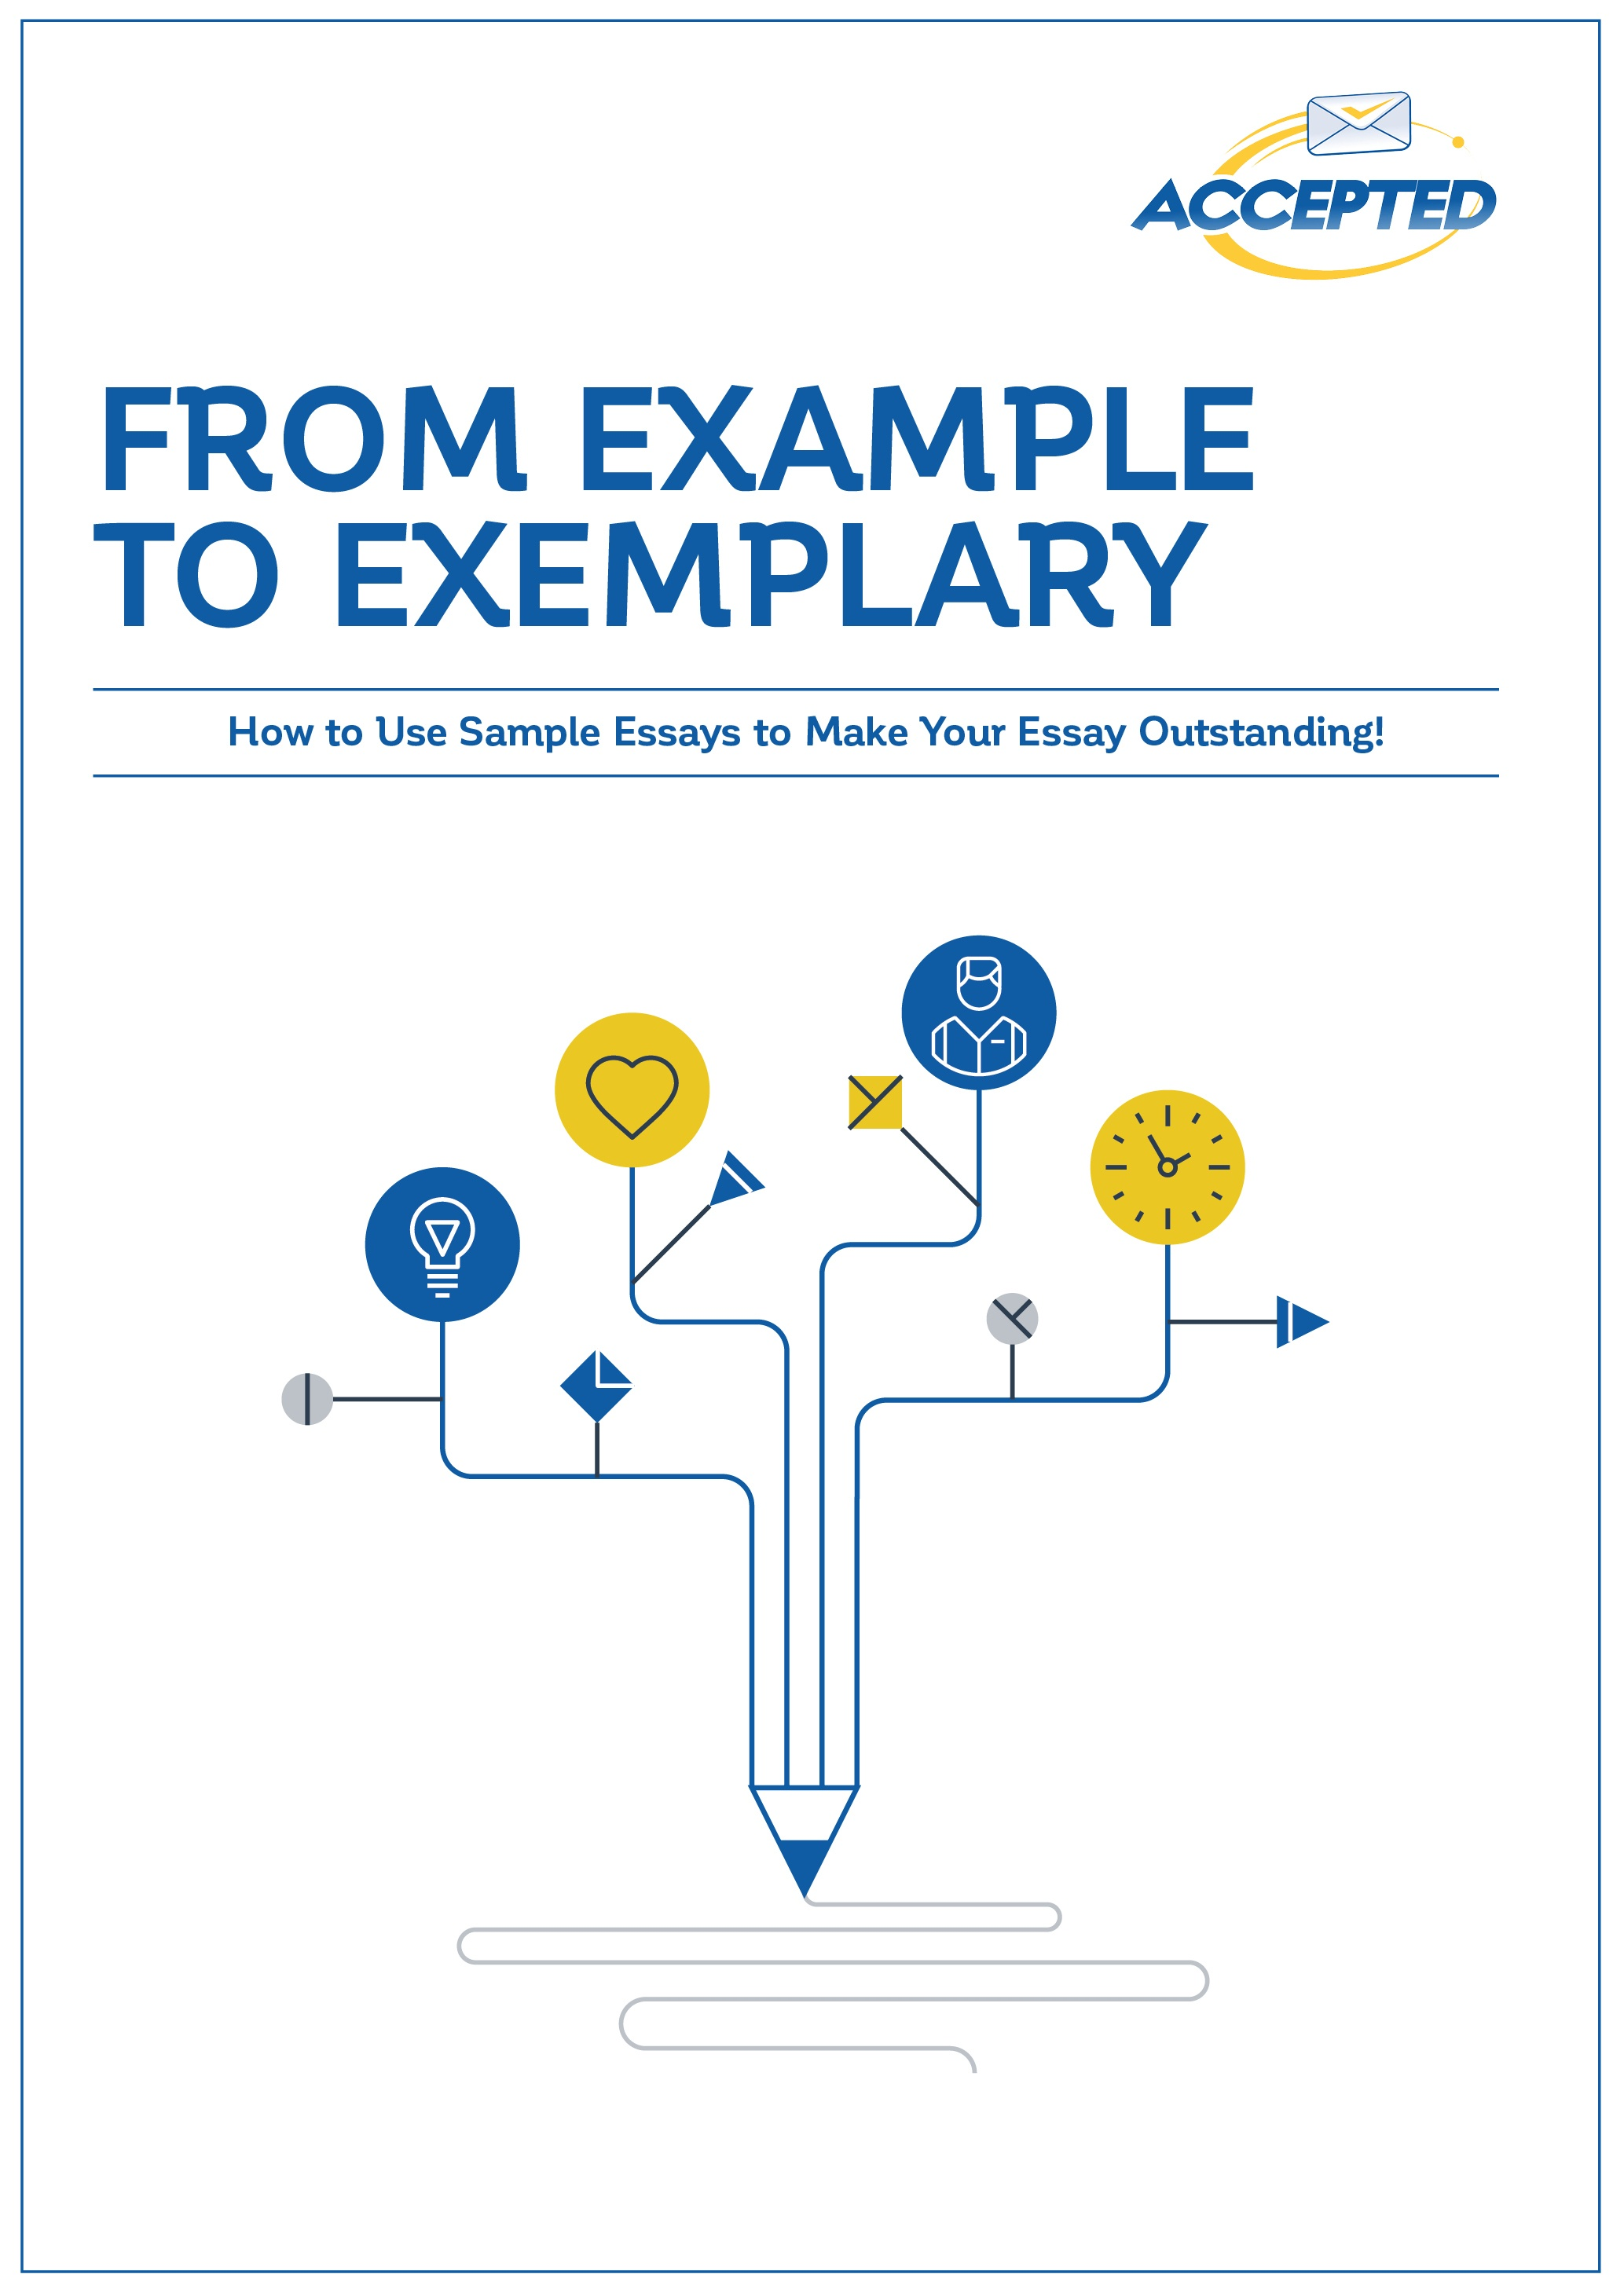 Download From Example to Exemplary Now!